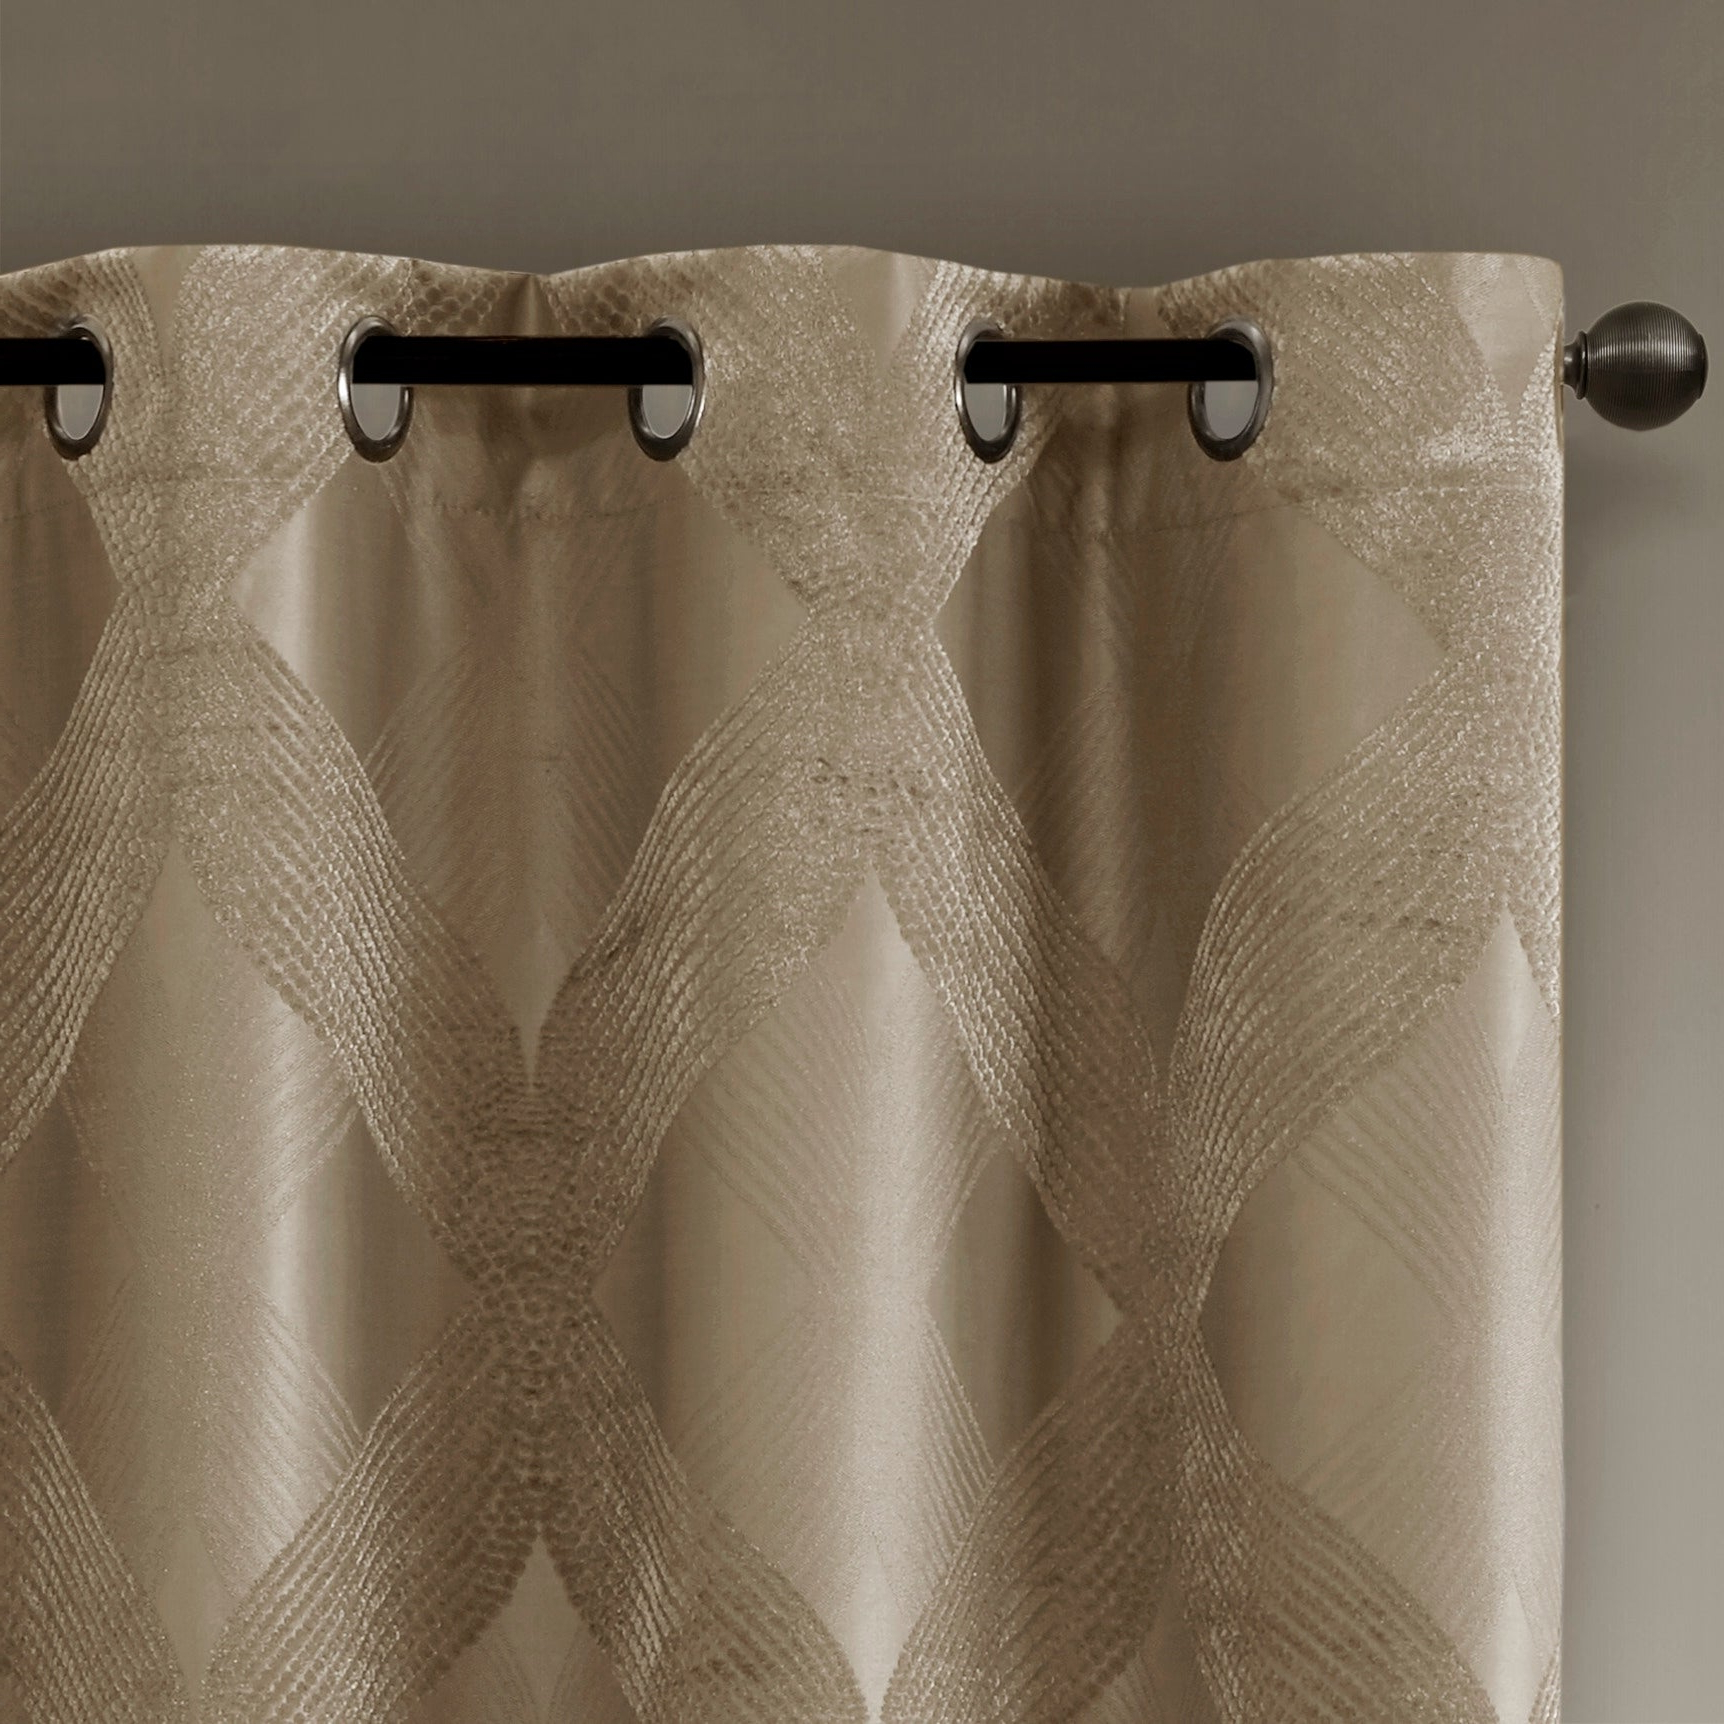 Sunsmart Abel Ogee Knitted Jacquard Total Blackout Curtain Panels In Latest Sunsmart Abel Ogee Knitted Jacquard Total Blackout Curtain Panel (View 7 of 20)